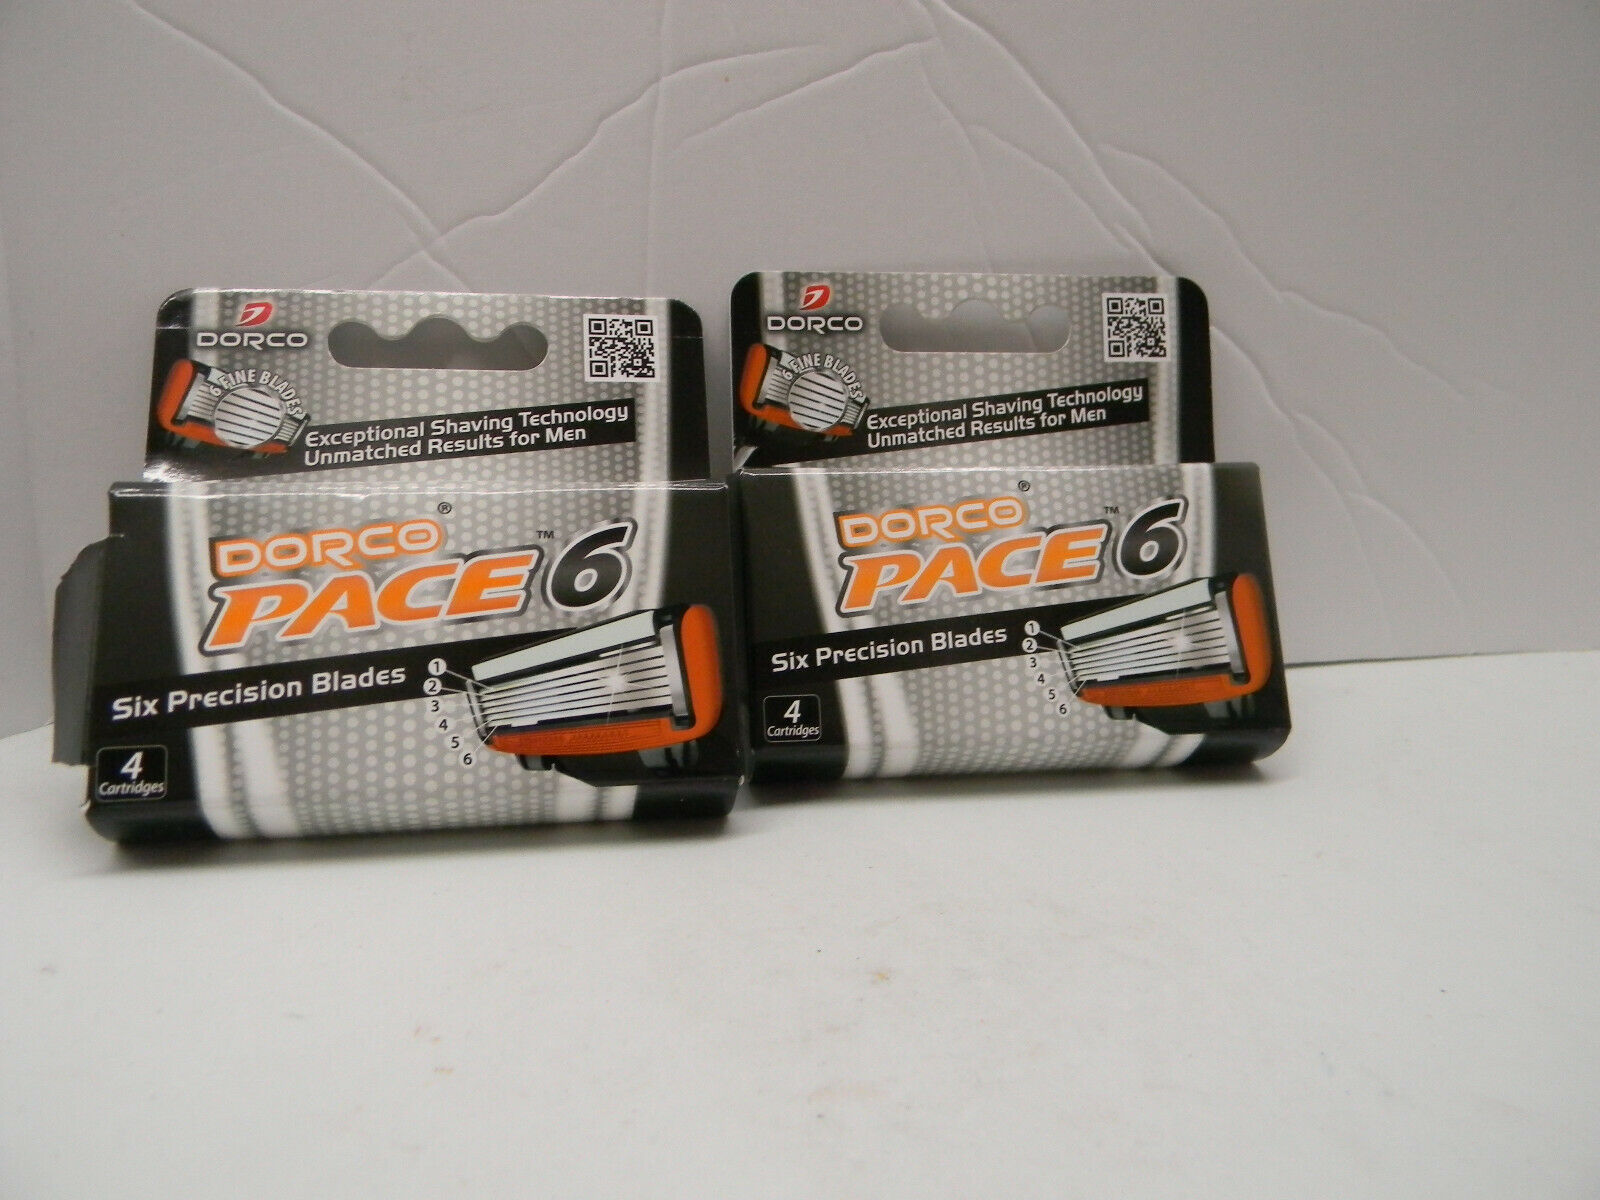 Dorco Pace 6- Six Blade Razor System Refill Cartridge - 4 Co